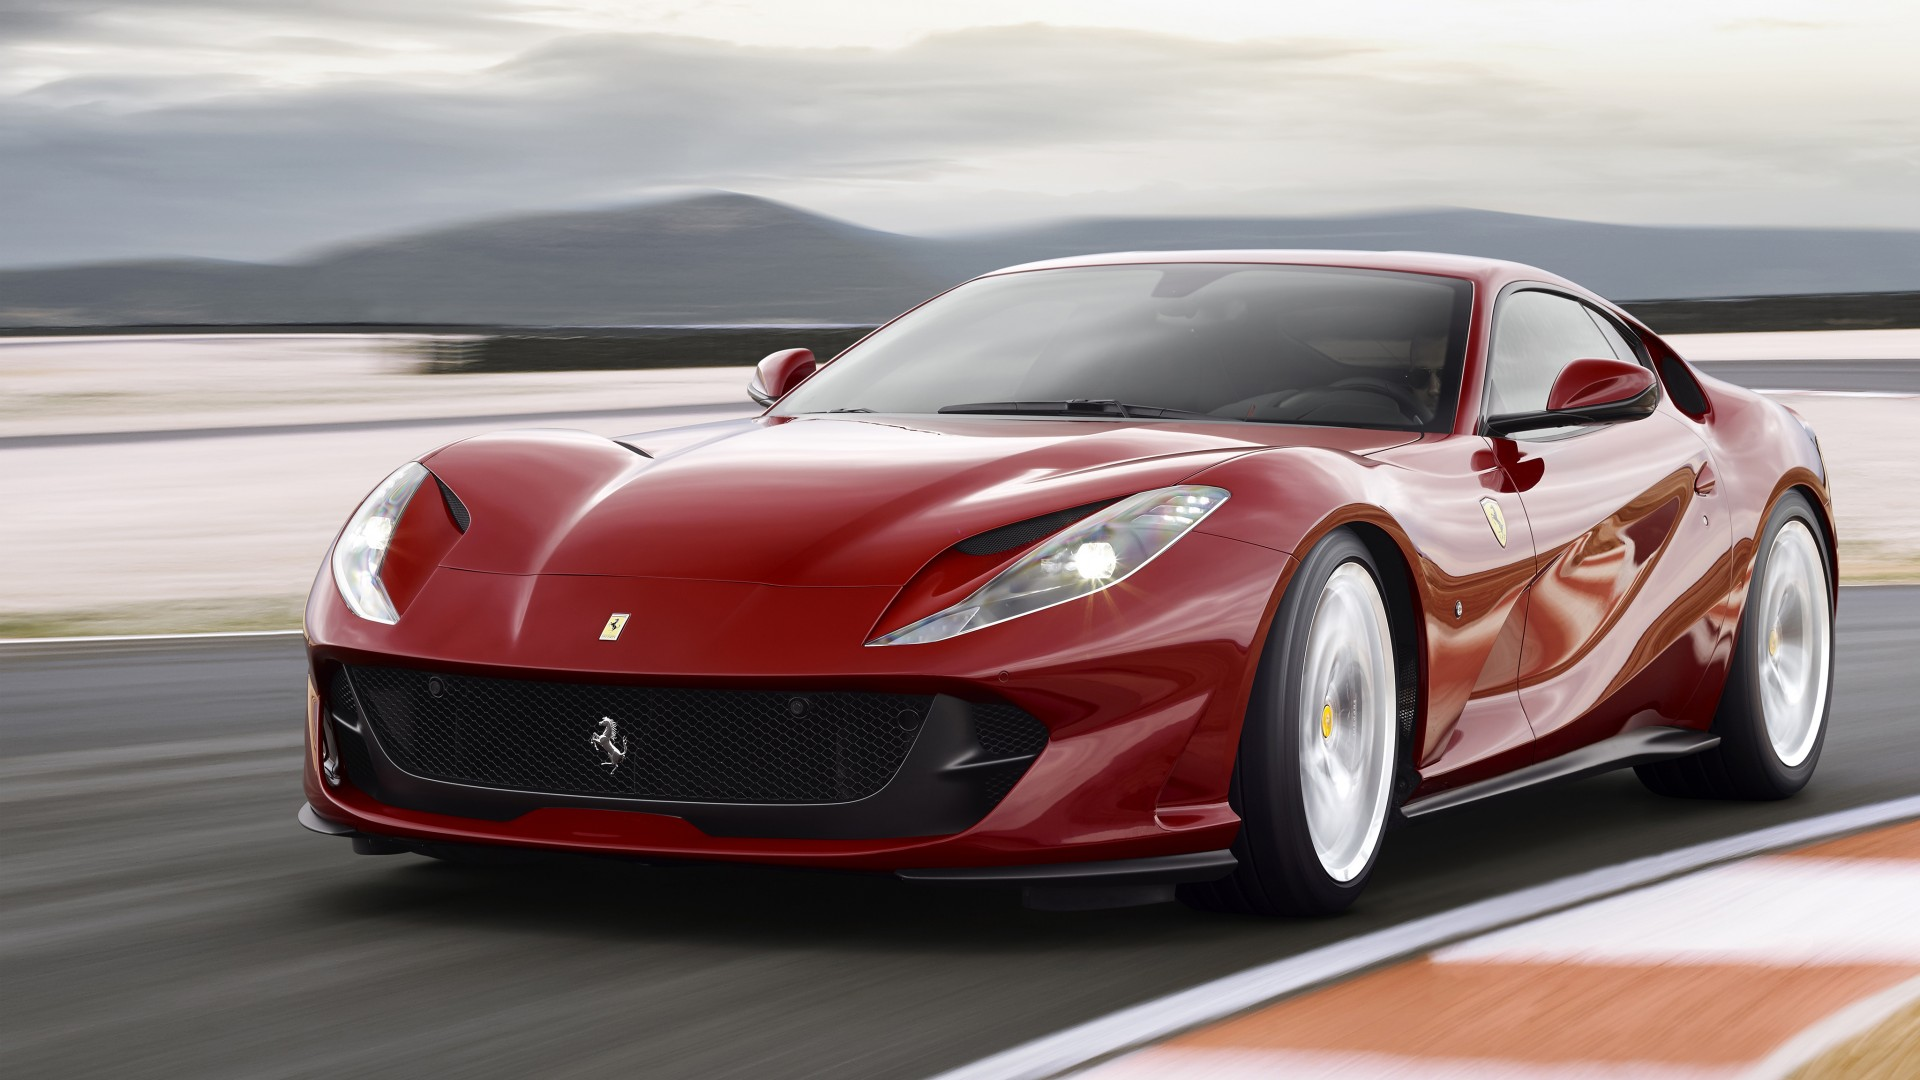 Ferrari 812 Superfast 2018 4K 4 Wallpaper | HD Car ...